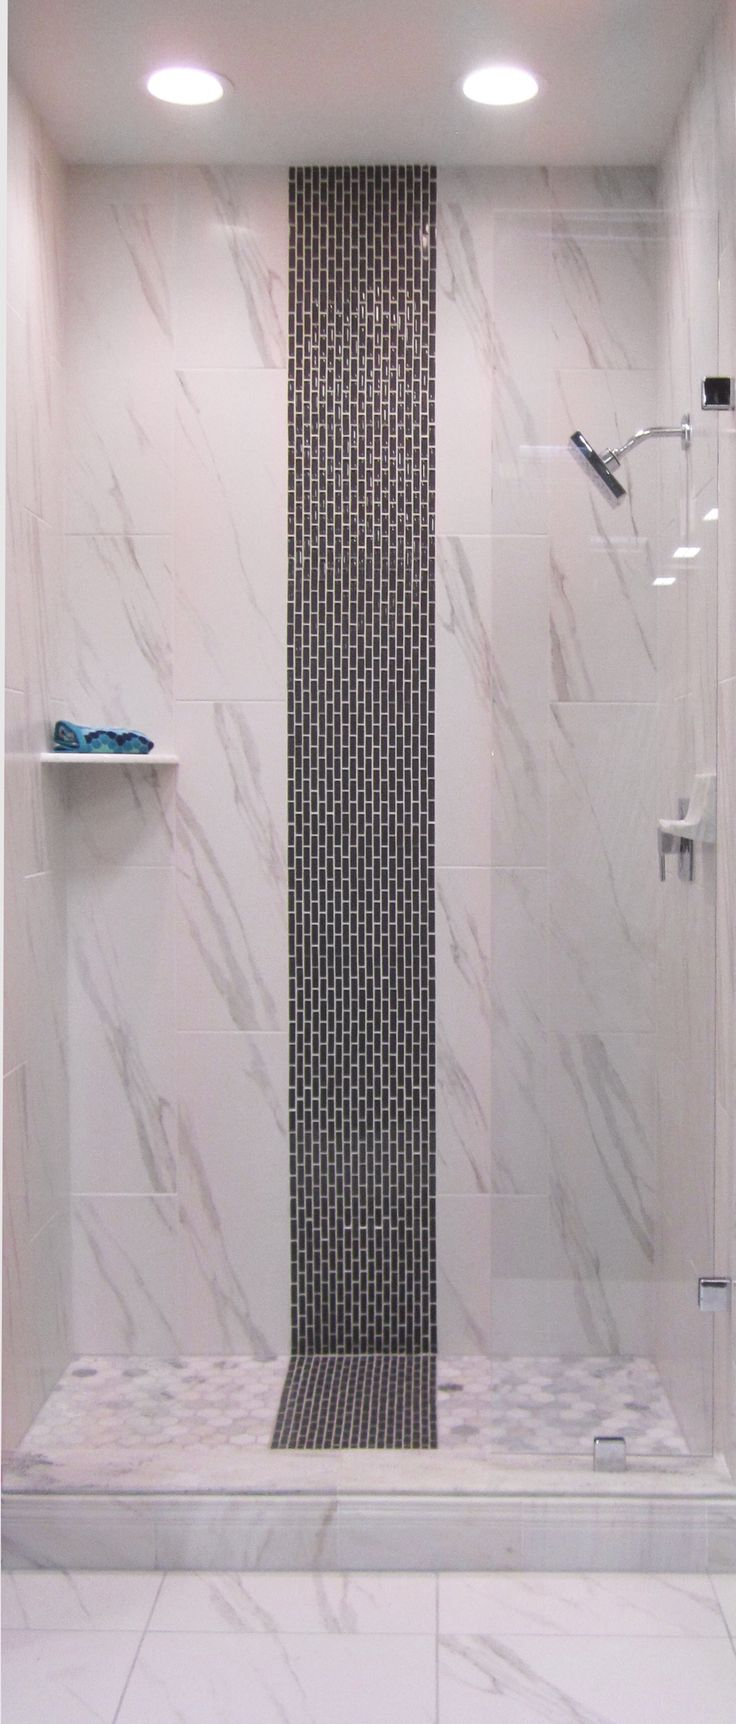 Shower Wall Tile A Glass Strip Mosaic In The Shower. #thetileshop